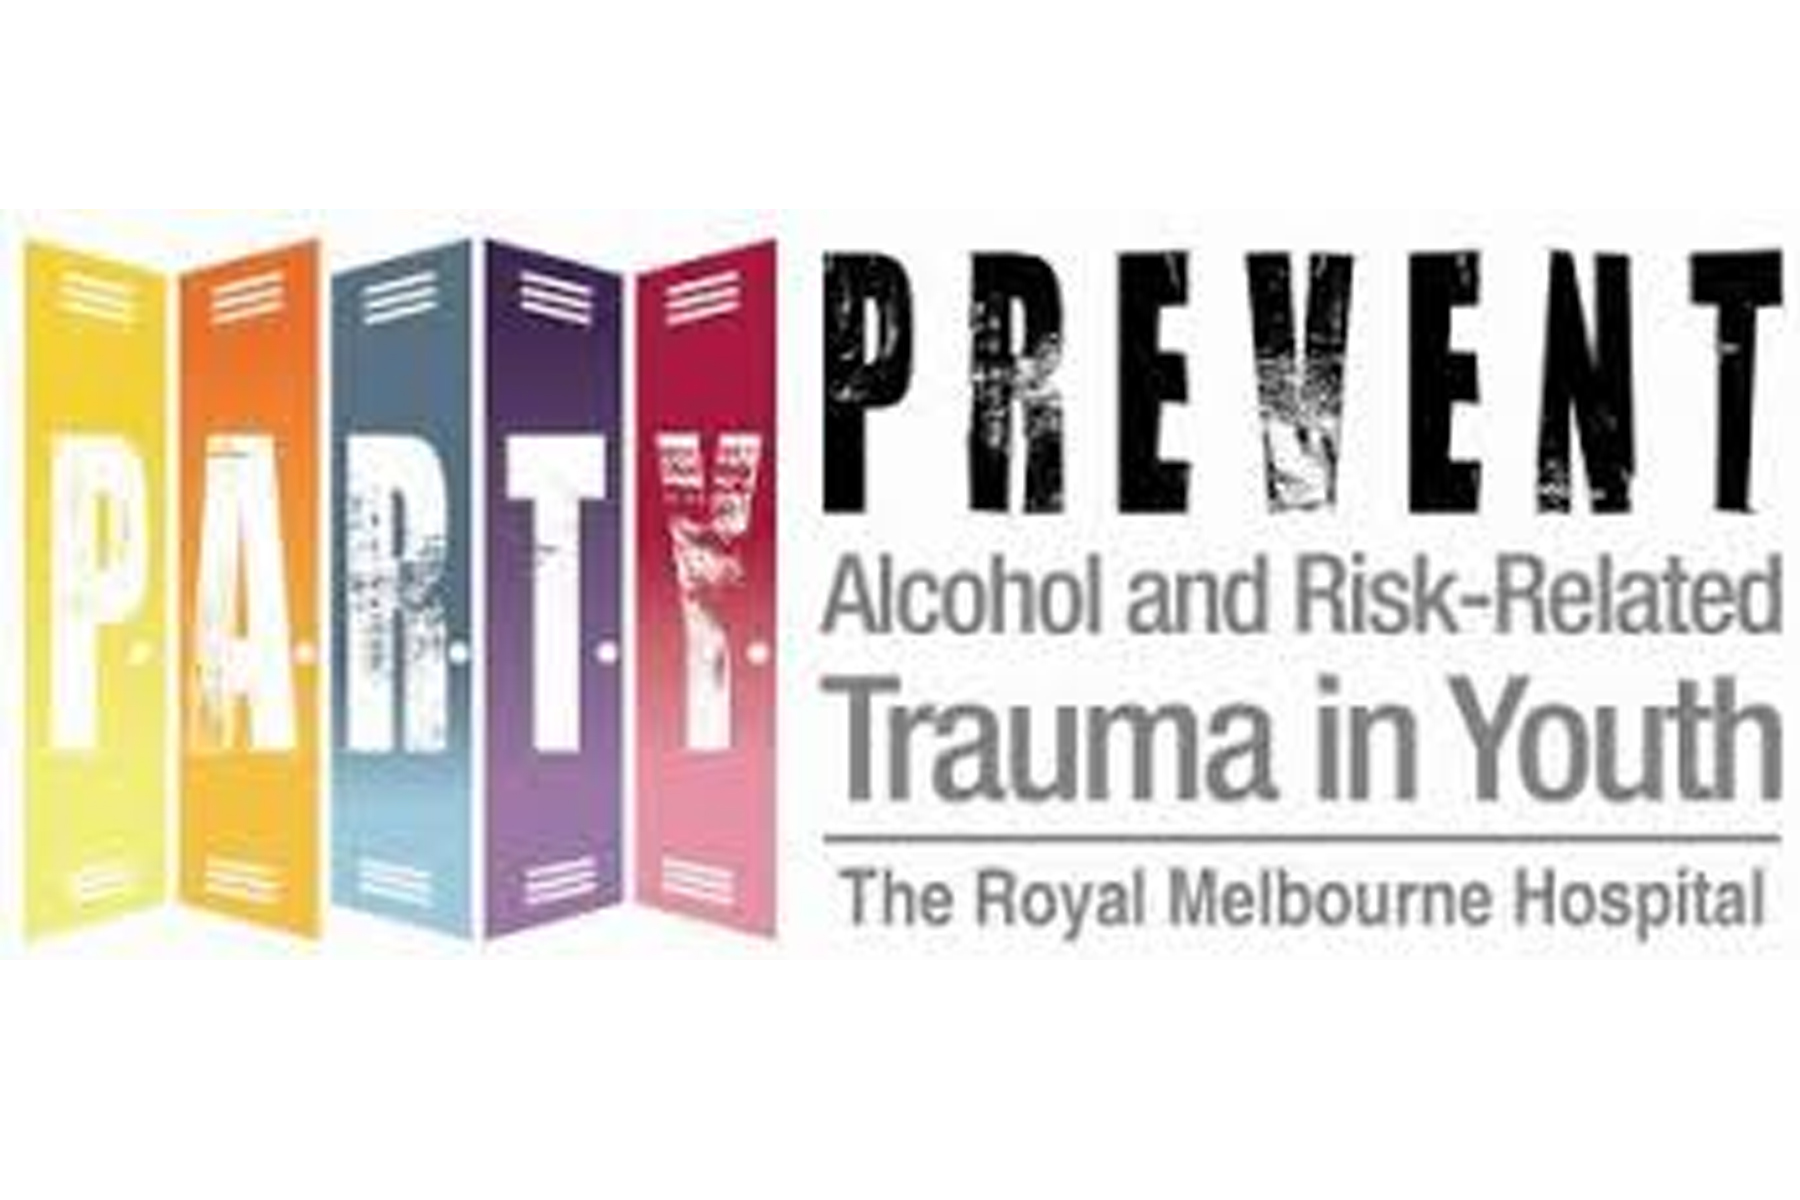 Yr 12 Student's Participate in P.A.R.T.Y. Program (Prevent Alcohol and Risk-Related Trauma in Youth)